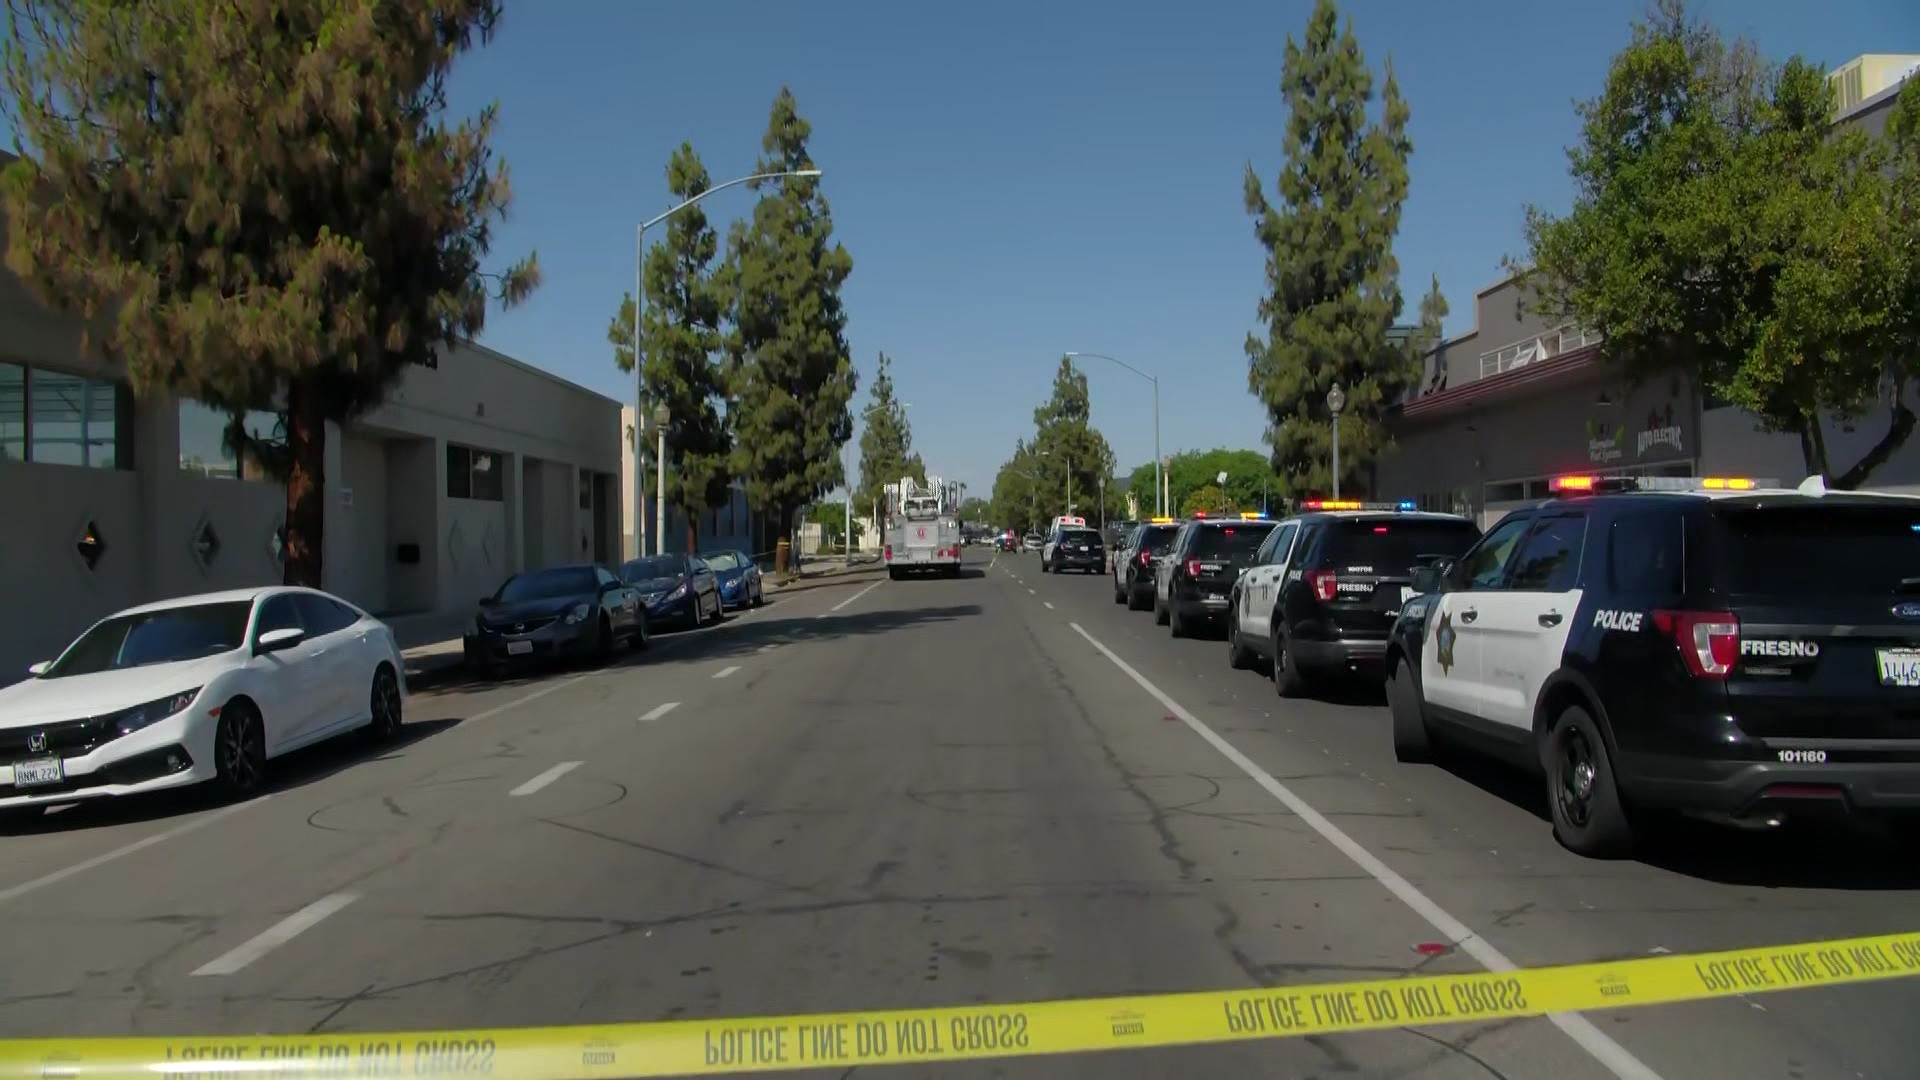 Downtown Fresno streets closed, schools in lockdown, as police search for suspect